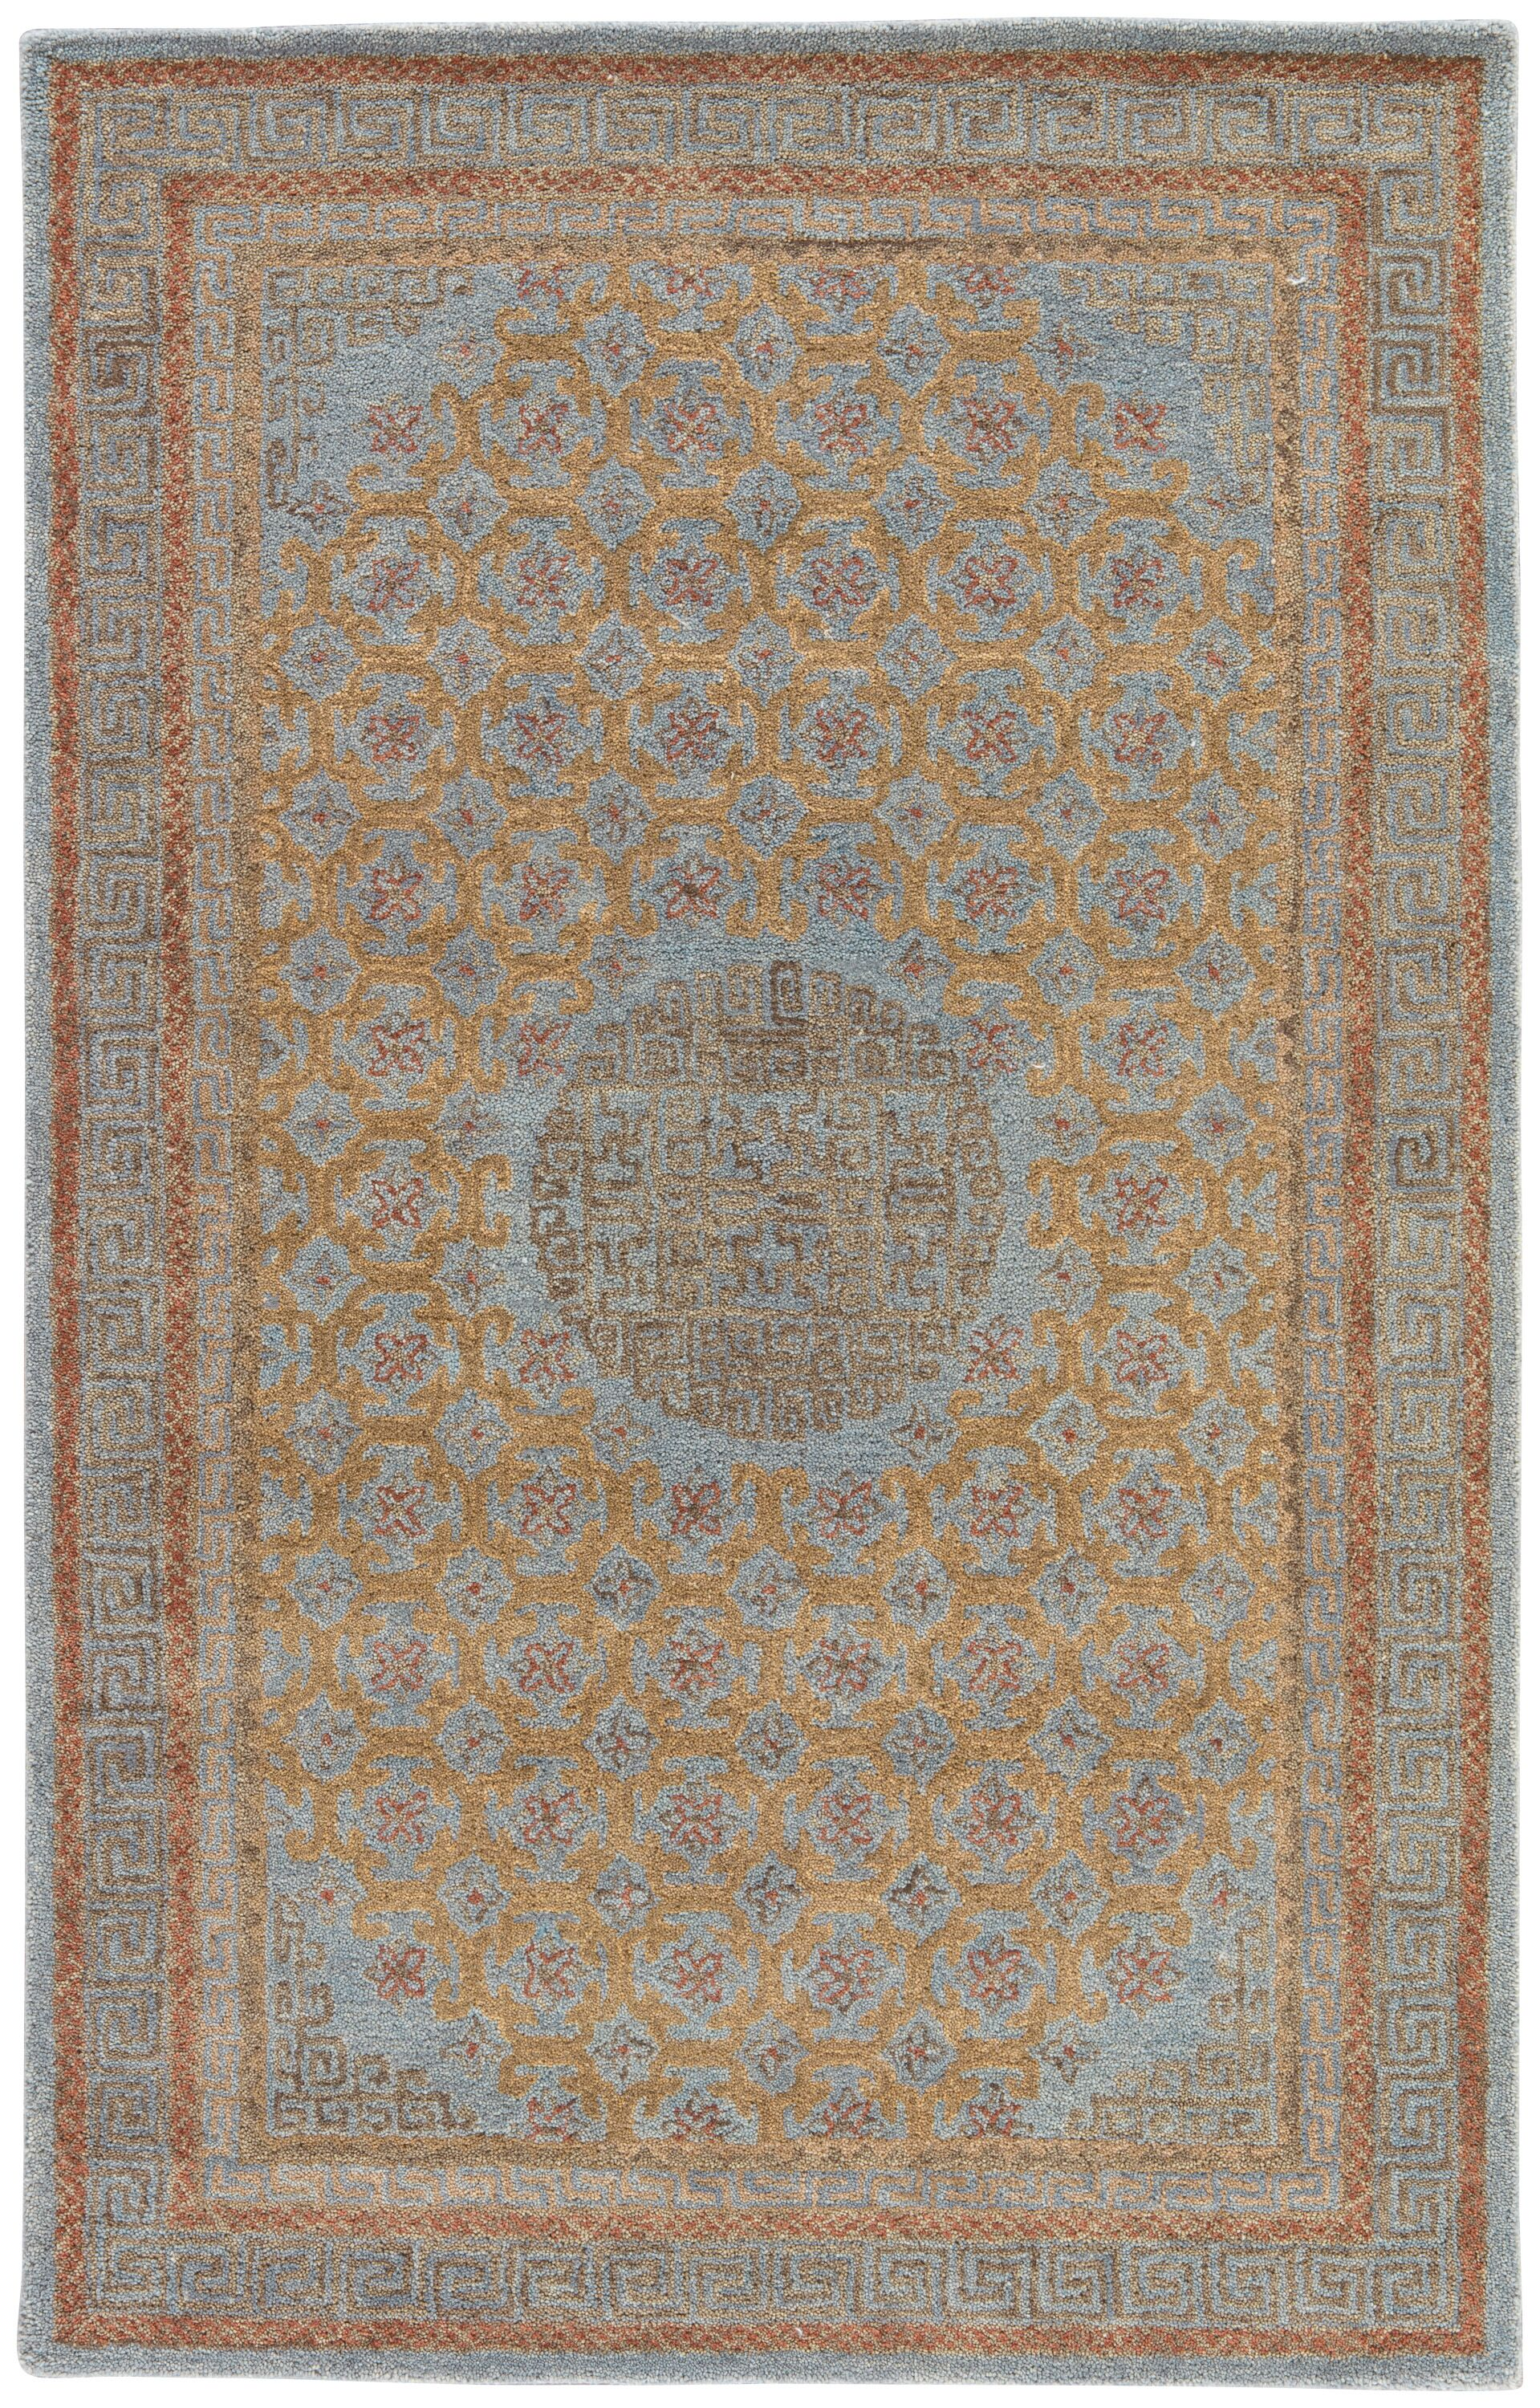 Holden Hand-Tufted Blue/Cinnamon Area Rug Rug Size: Rectangle 2' x 3'